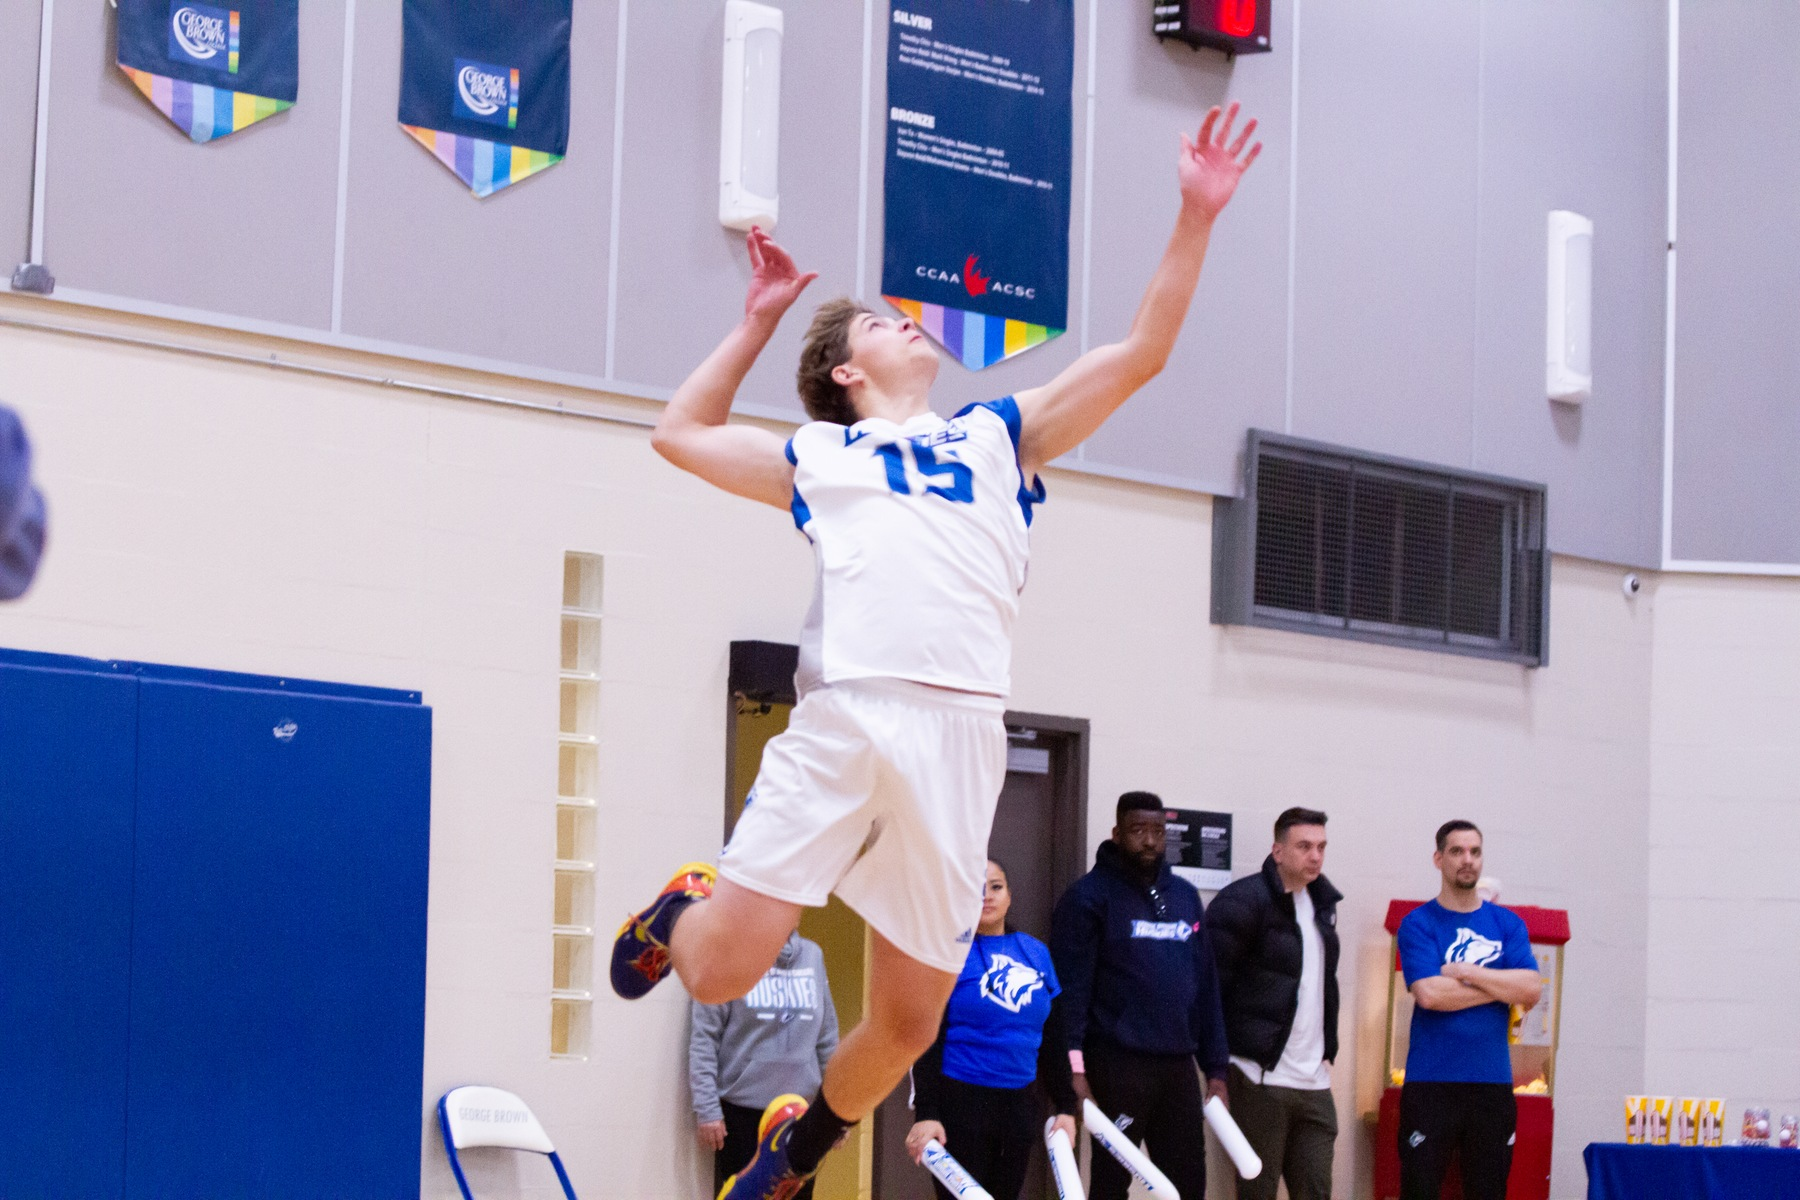 Volleyball player Grayson Engleman hits a jump-serve